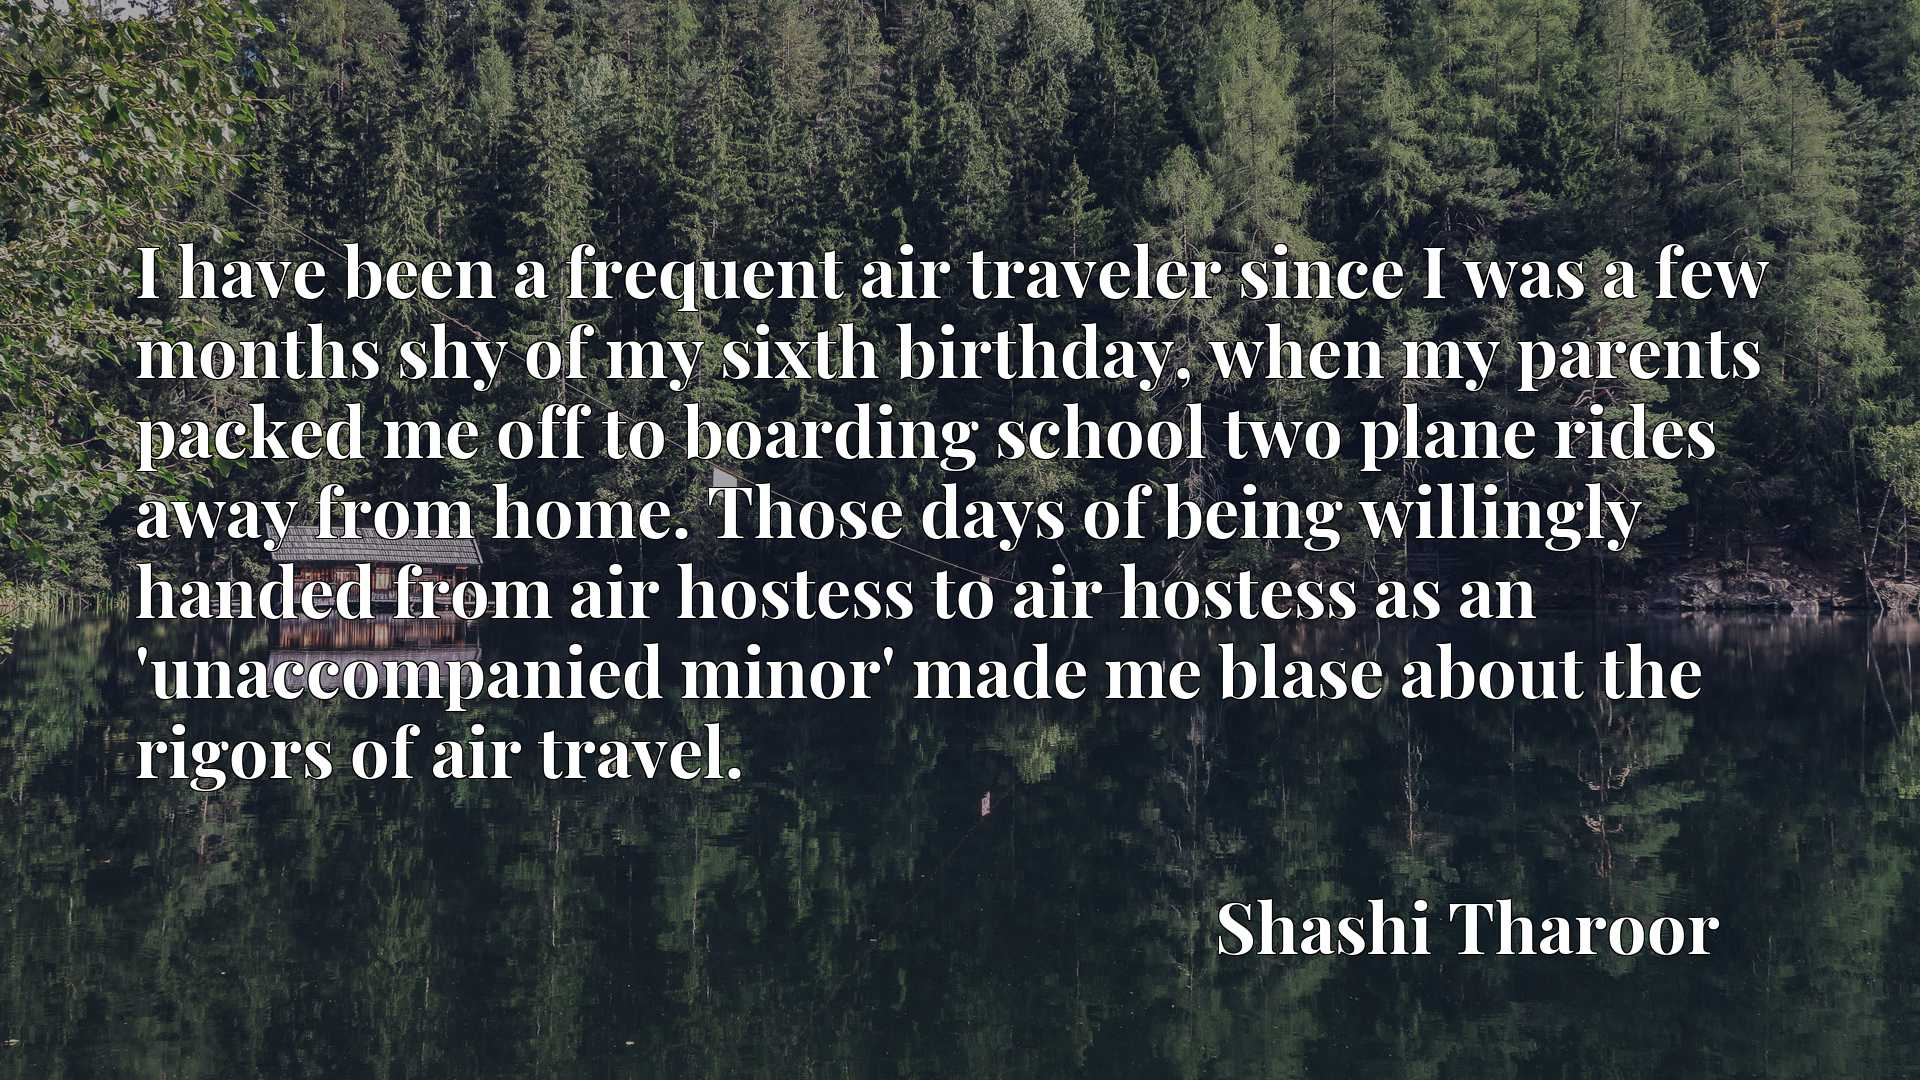 I have been a frequent air traveler since I was a few months shy of my sixth birthday, when my parents packed me off to boarding school two plane rides away from home. Those days of being willingly handed from air hostess to air hostess as an 'unaccompanied minor' made me blase about the rigors of air travel.